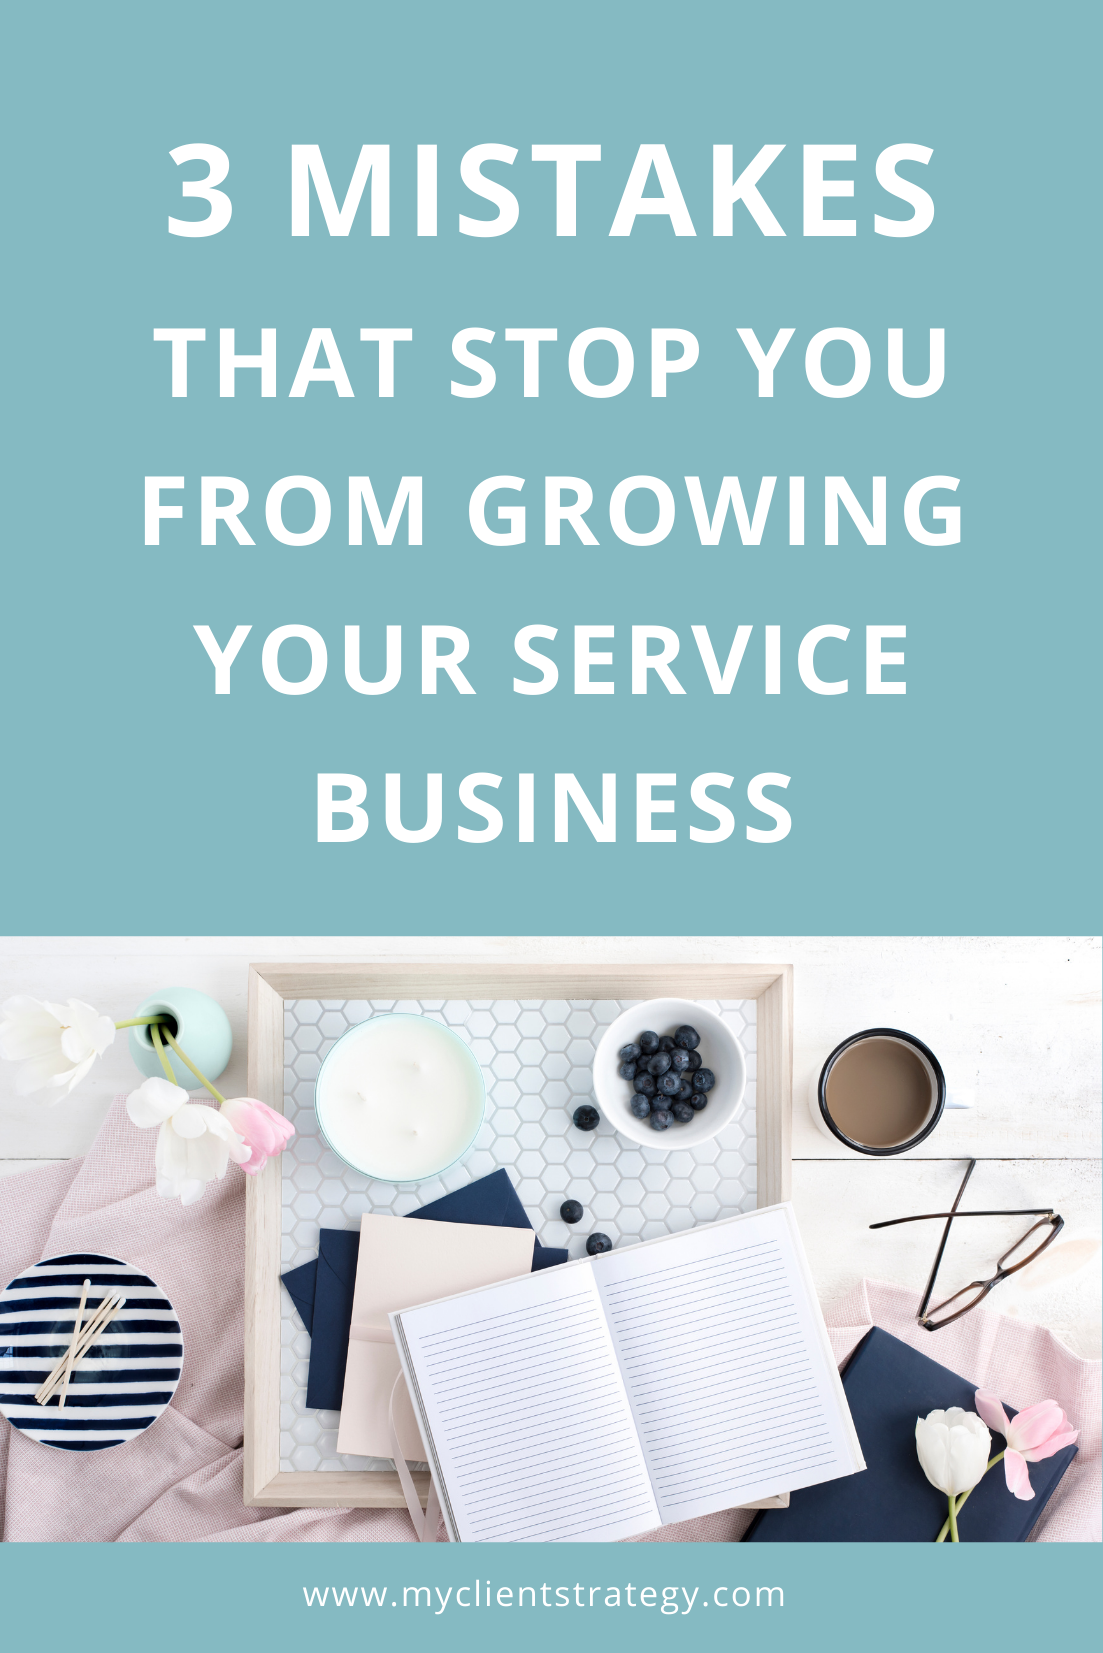 3 marketing mistakes that slow down your business growth